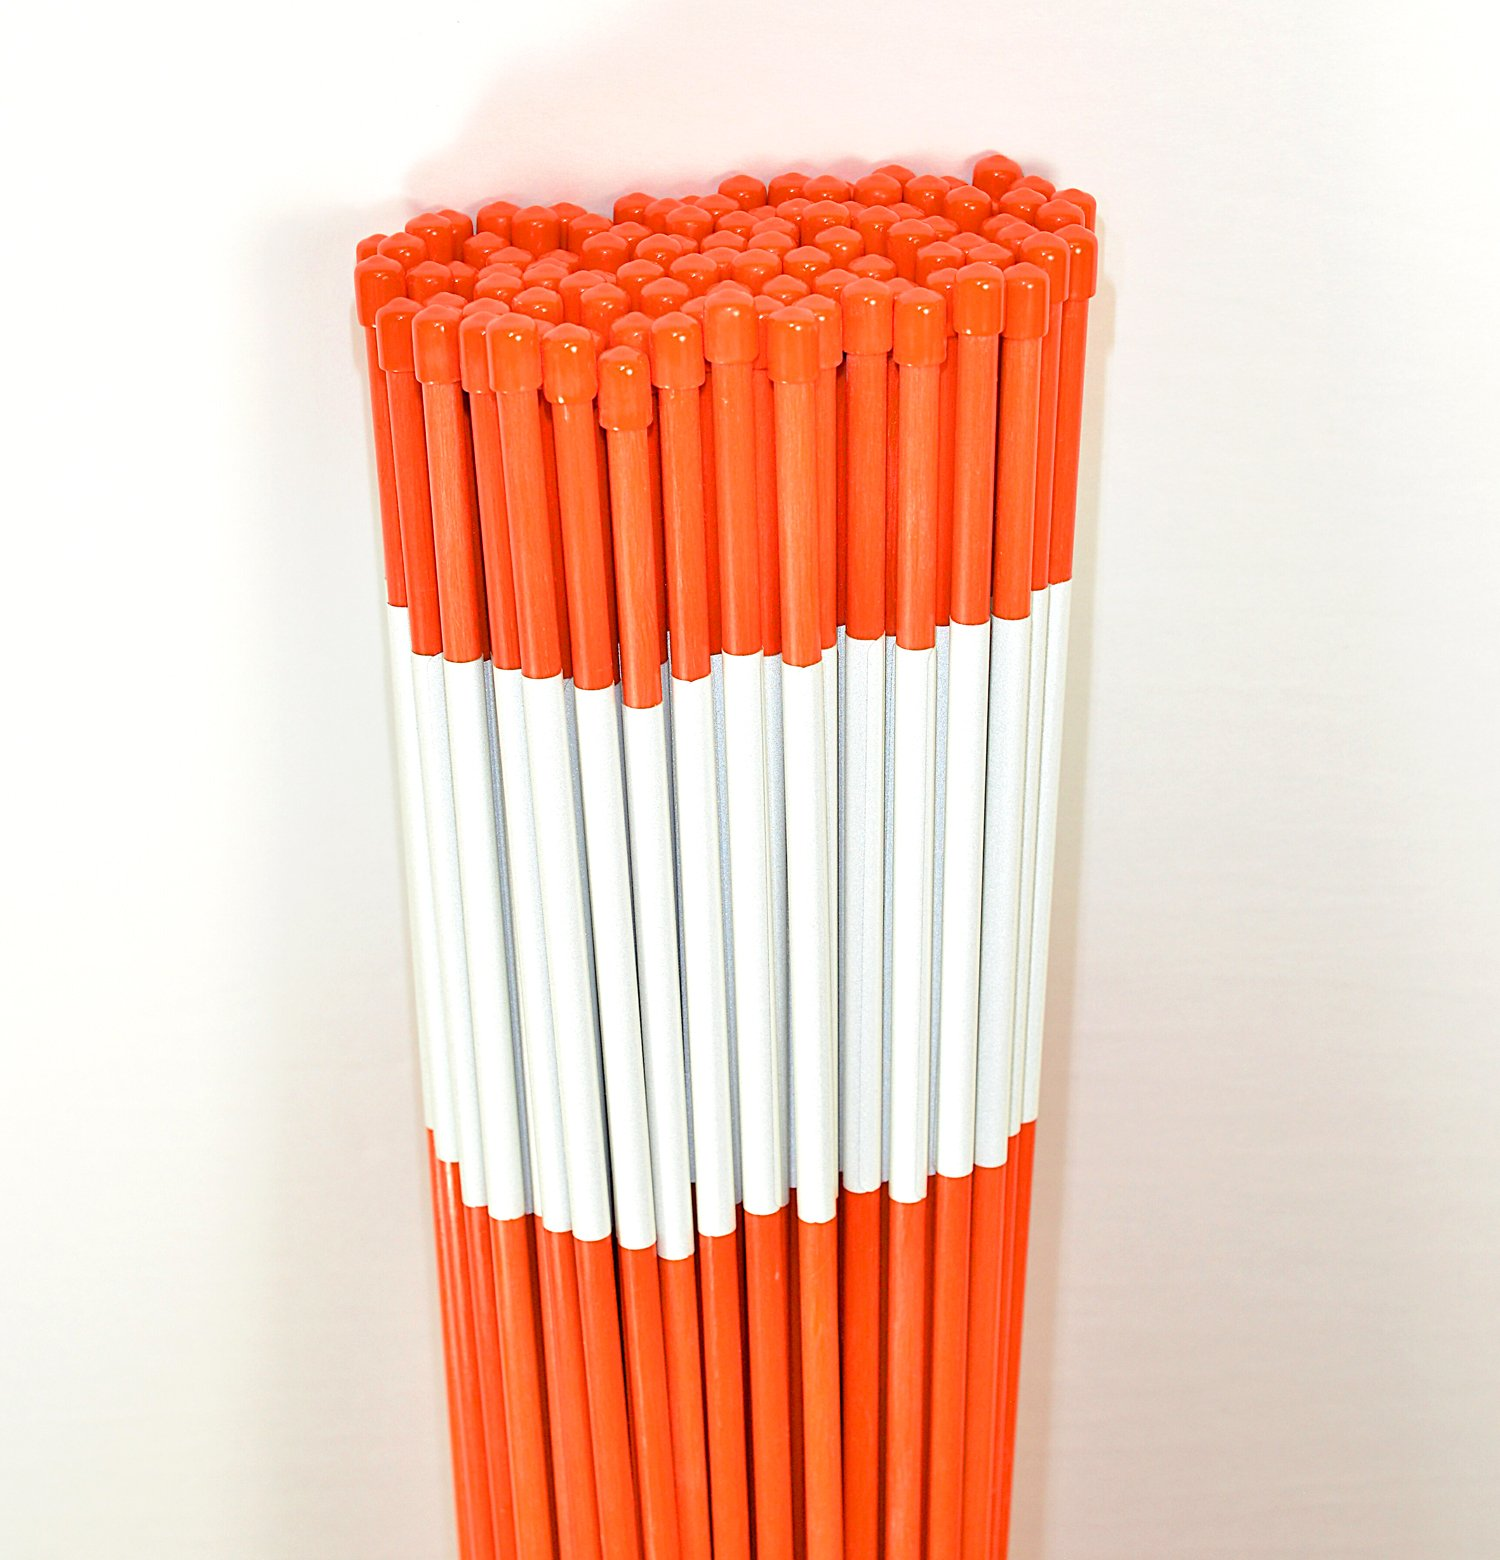 Driveway Marker, Snow Stakes, Plow Stakes, Reflective Tape, 5/16'' Diameter x 48'', Fiberglass, Orange, 100 Pack